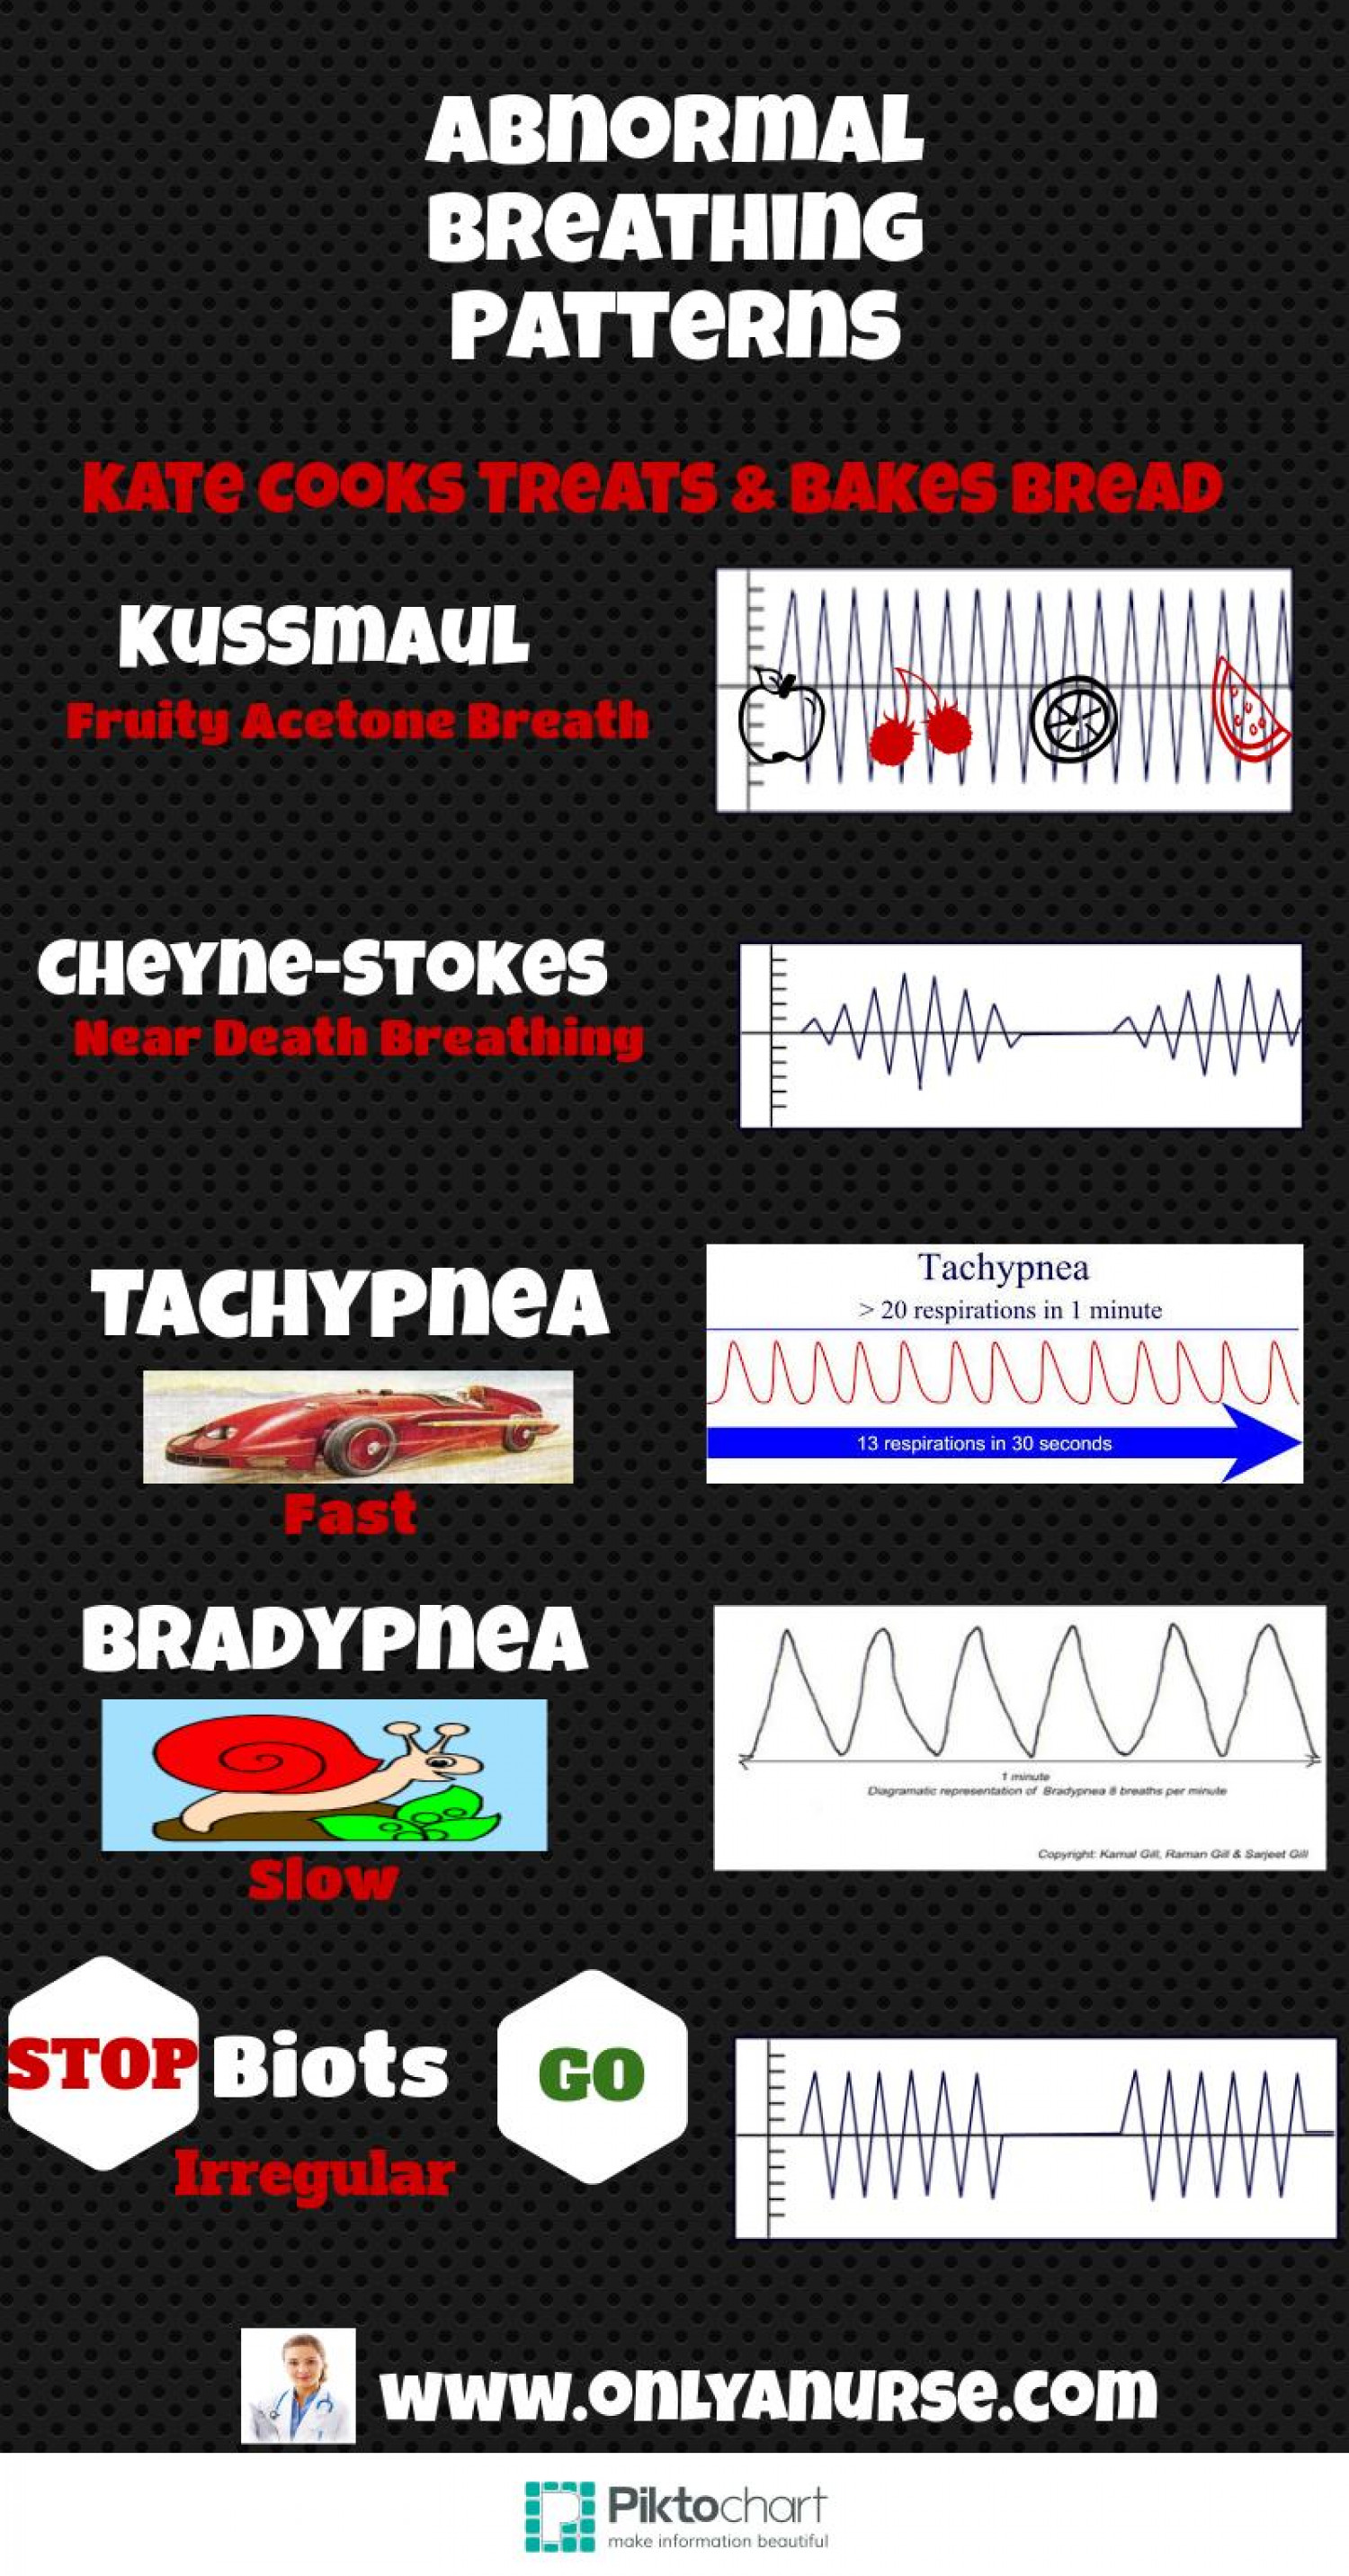 Abnormal Breathing Patterns All Nurses Should Know Infographic